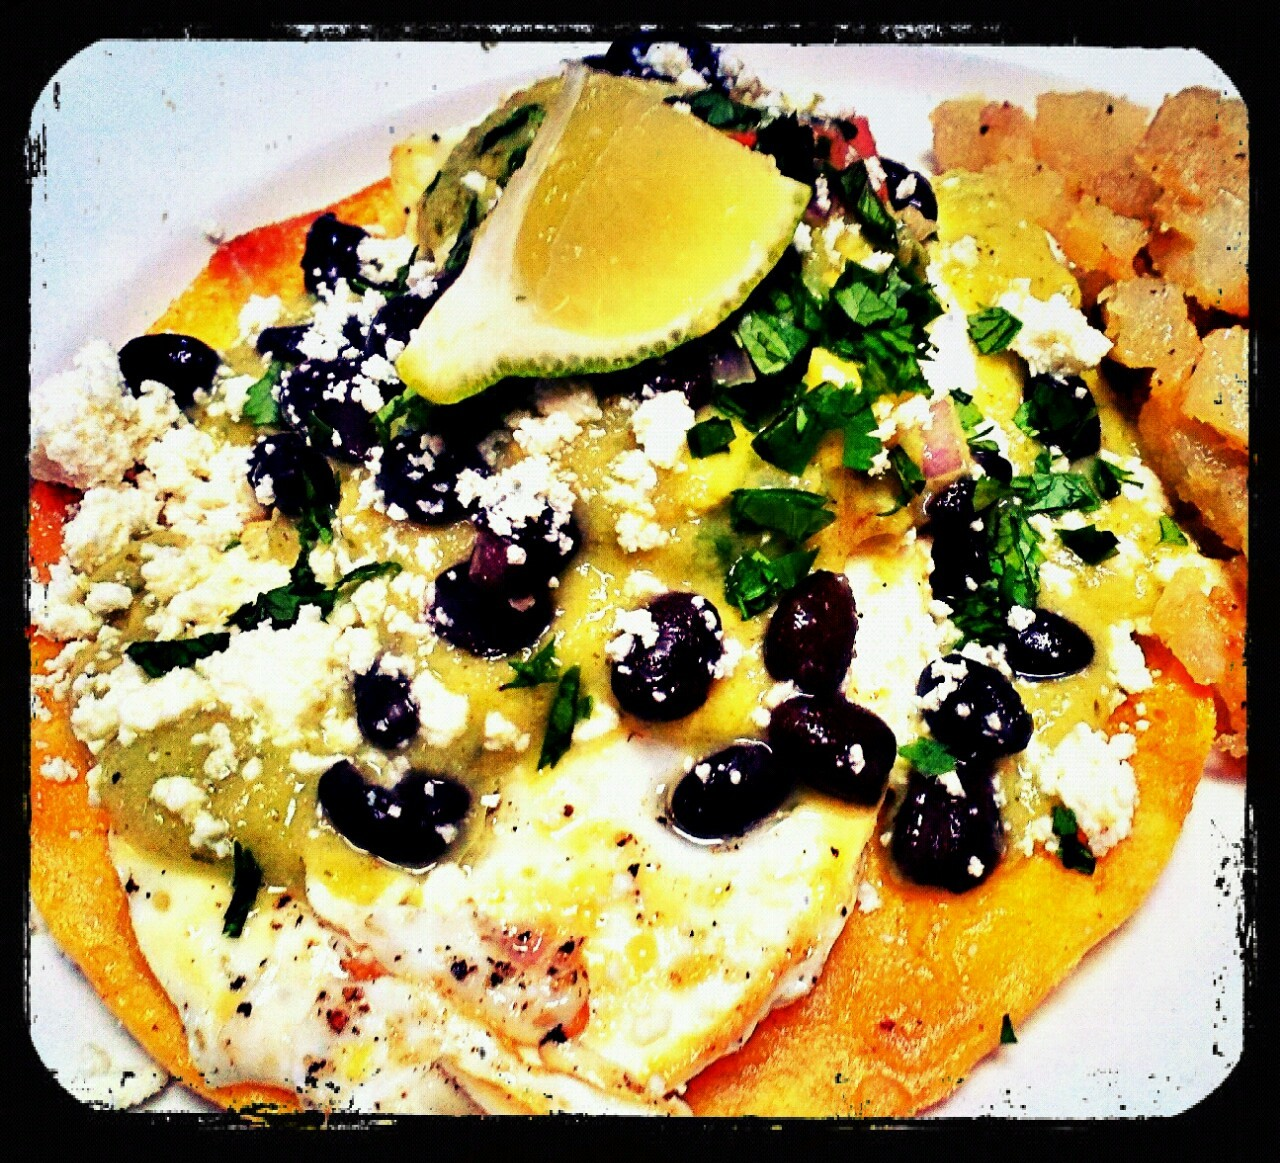 huevos rancheros by Kate Cowan - Delicatessen SoHo photo (&eaten by) me (frame23.tumblr.com)